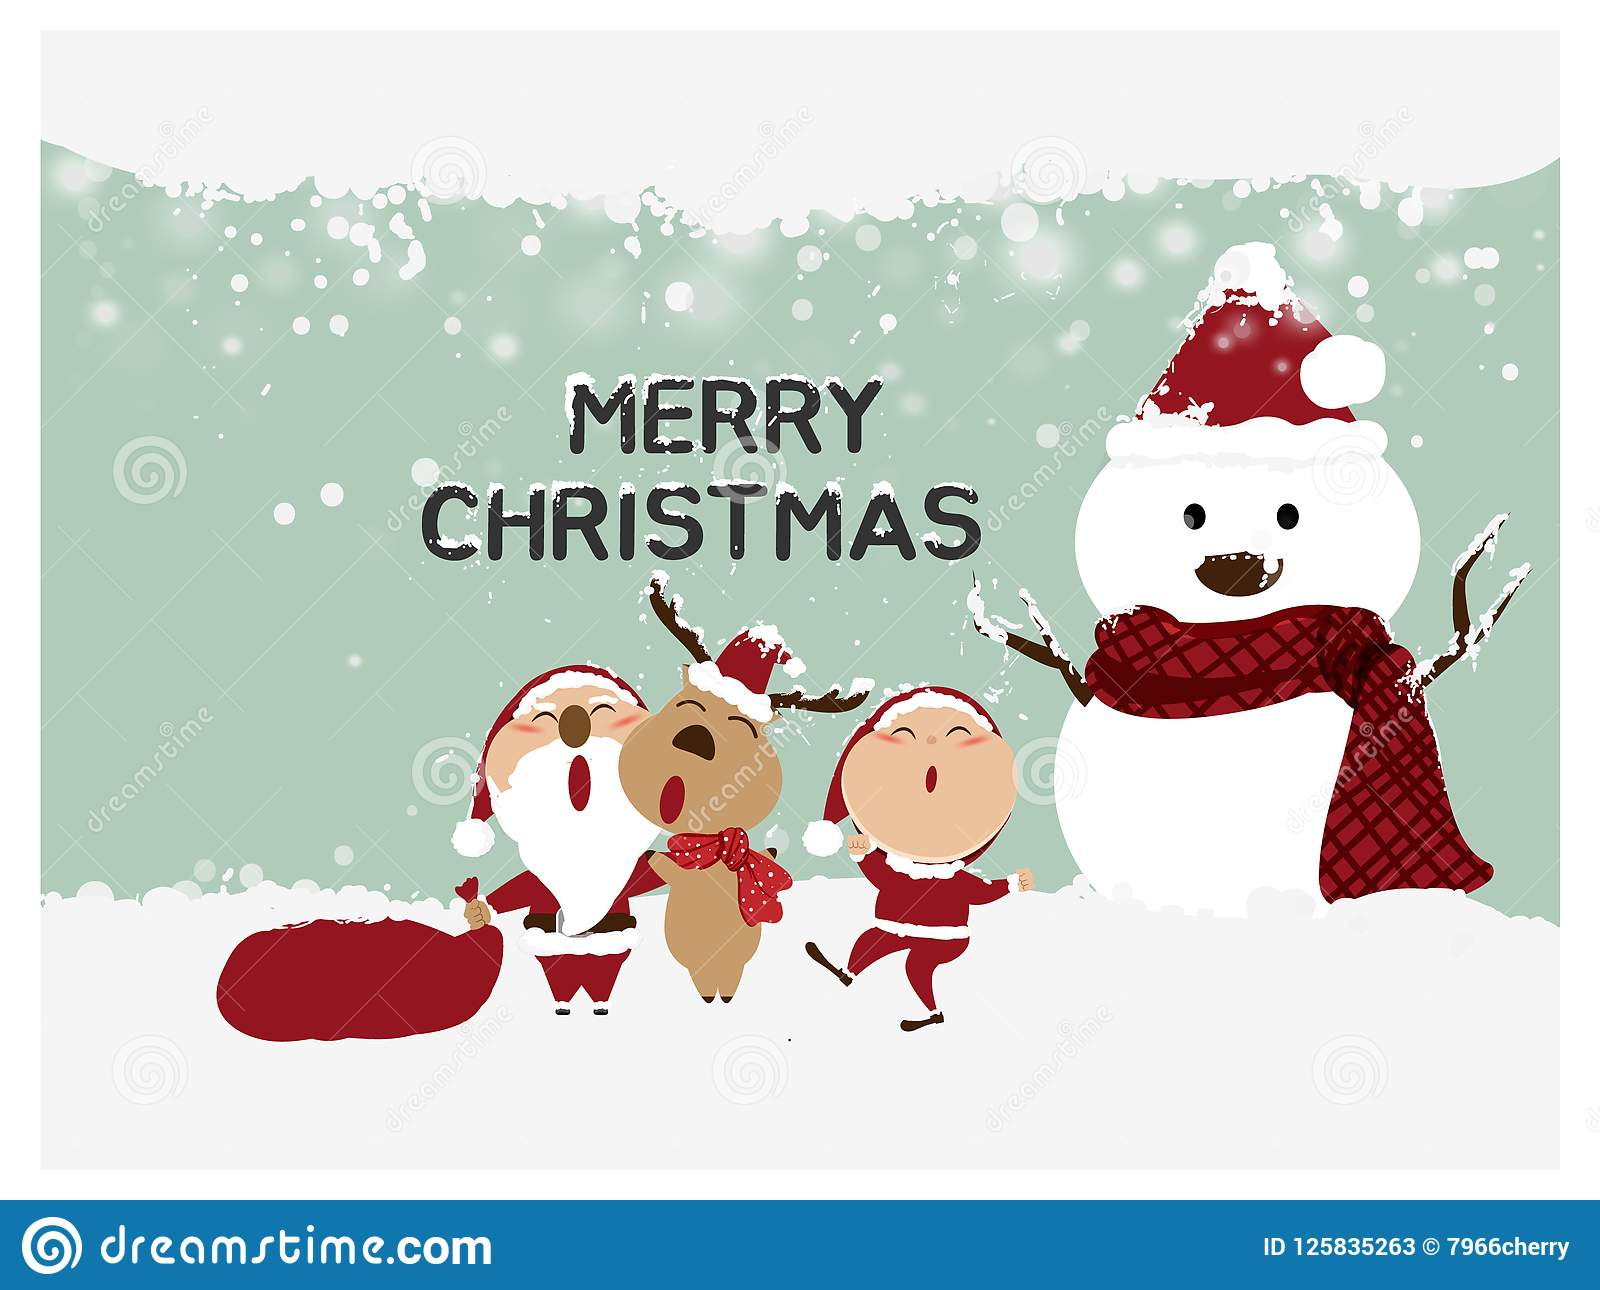 Merry Christmas And Happy New Year Santa Claus Snowman